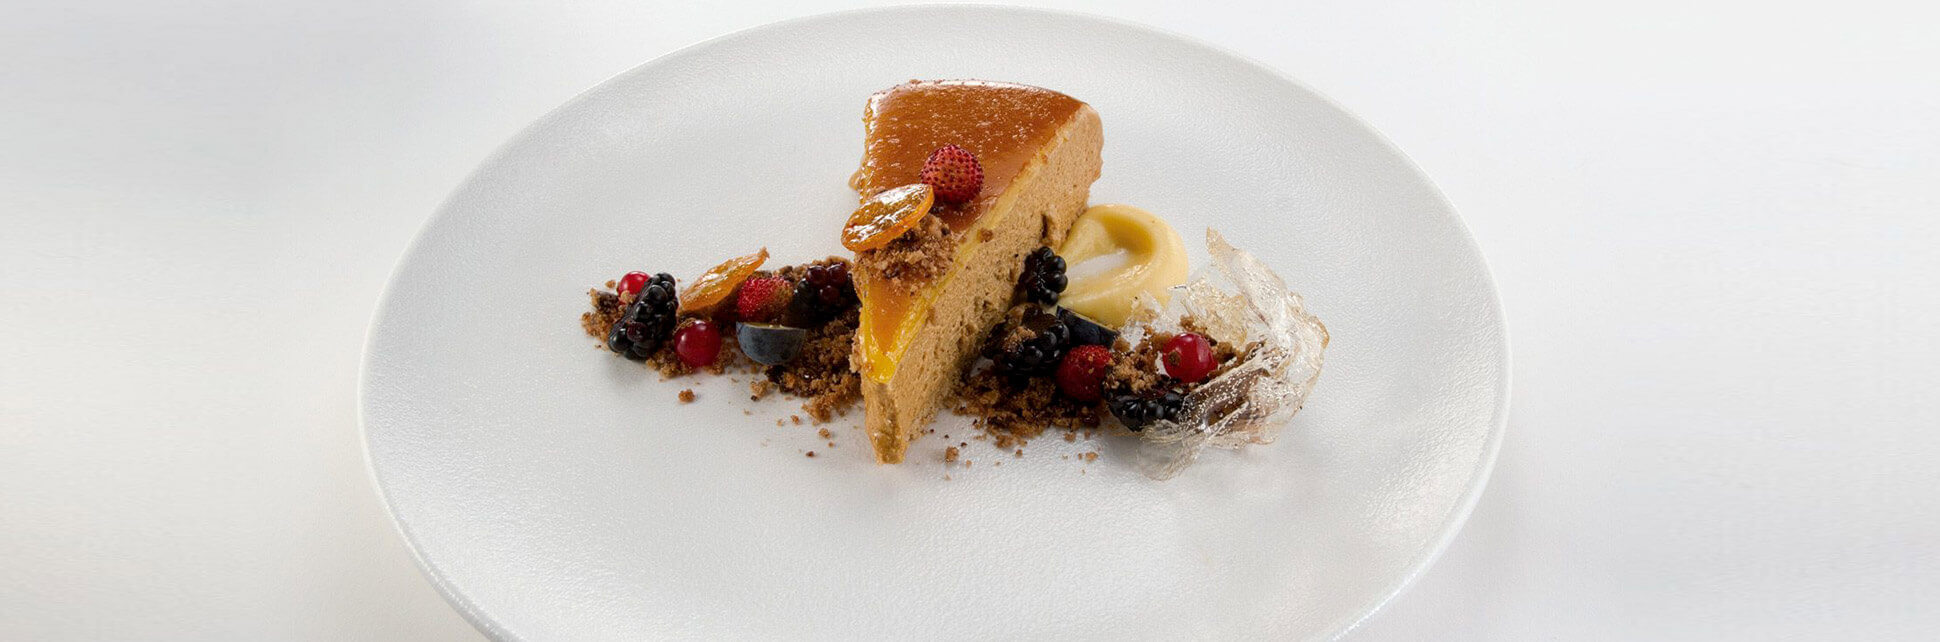 Caramel cake with spilled glass of crumble and fruit